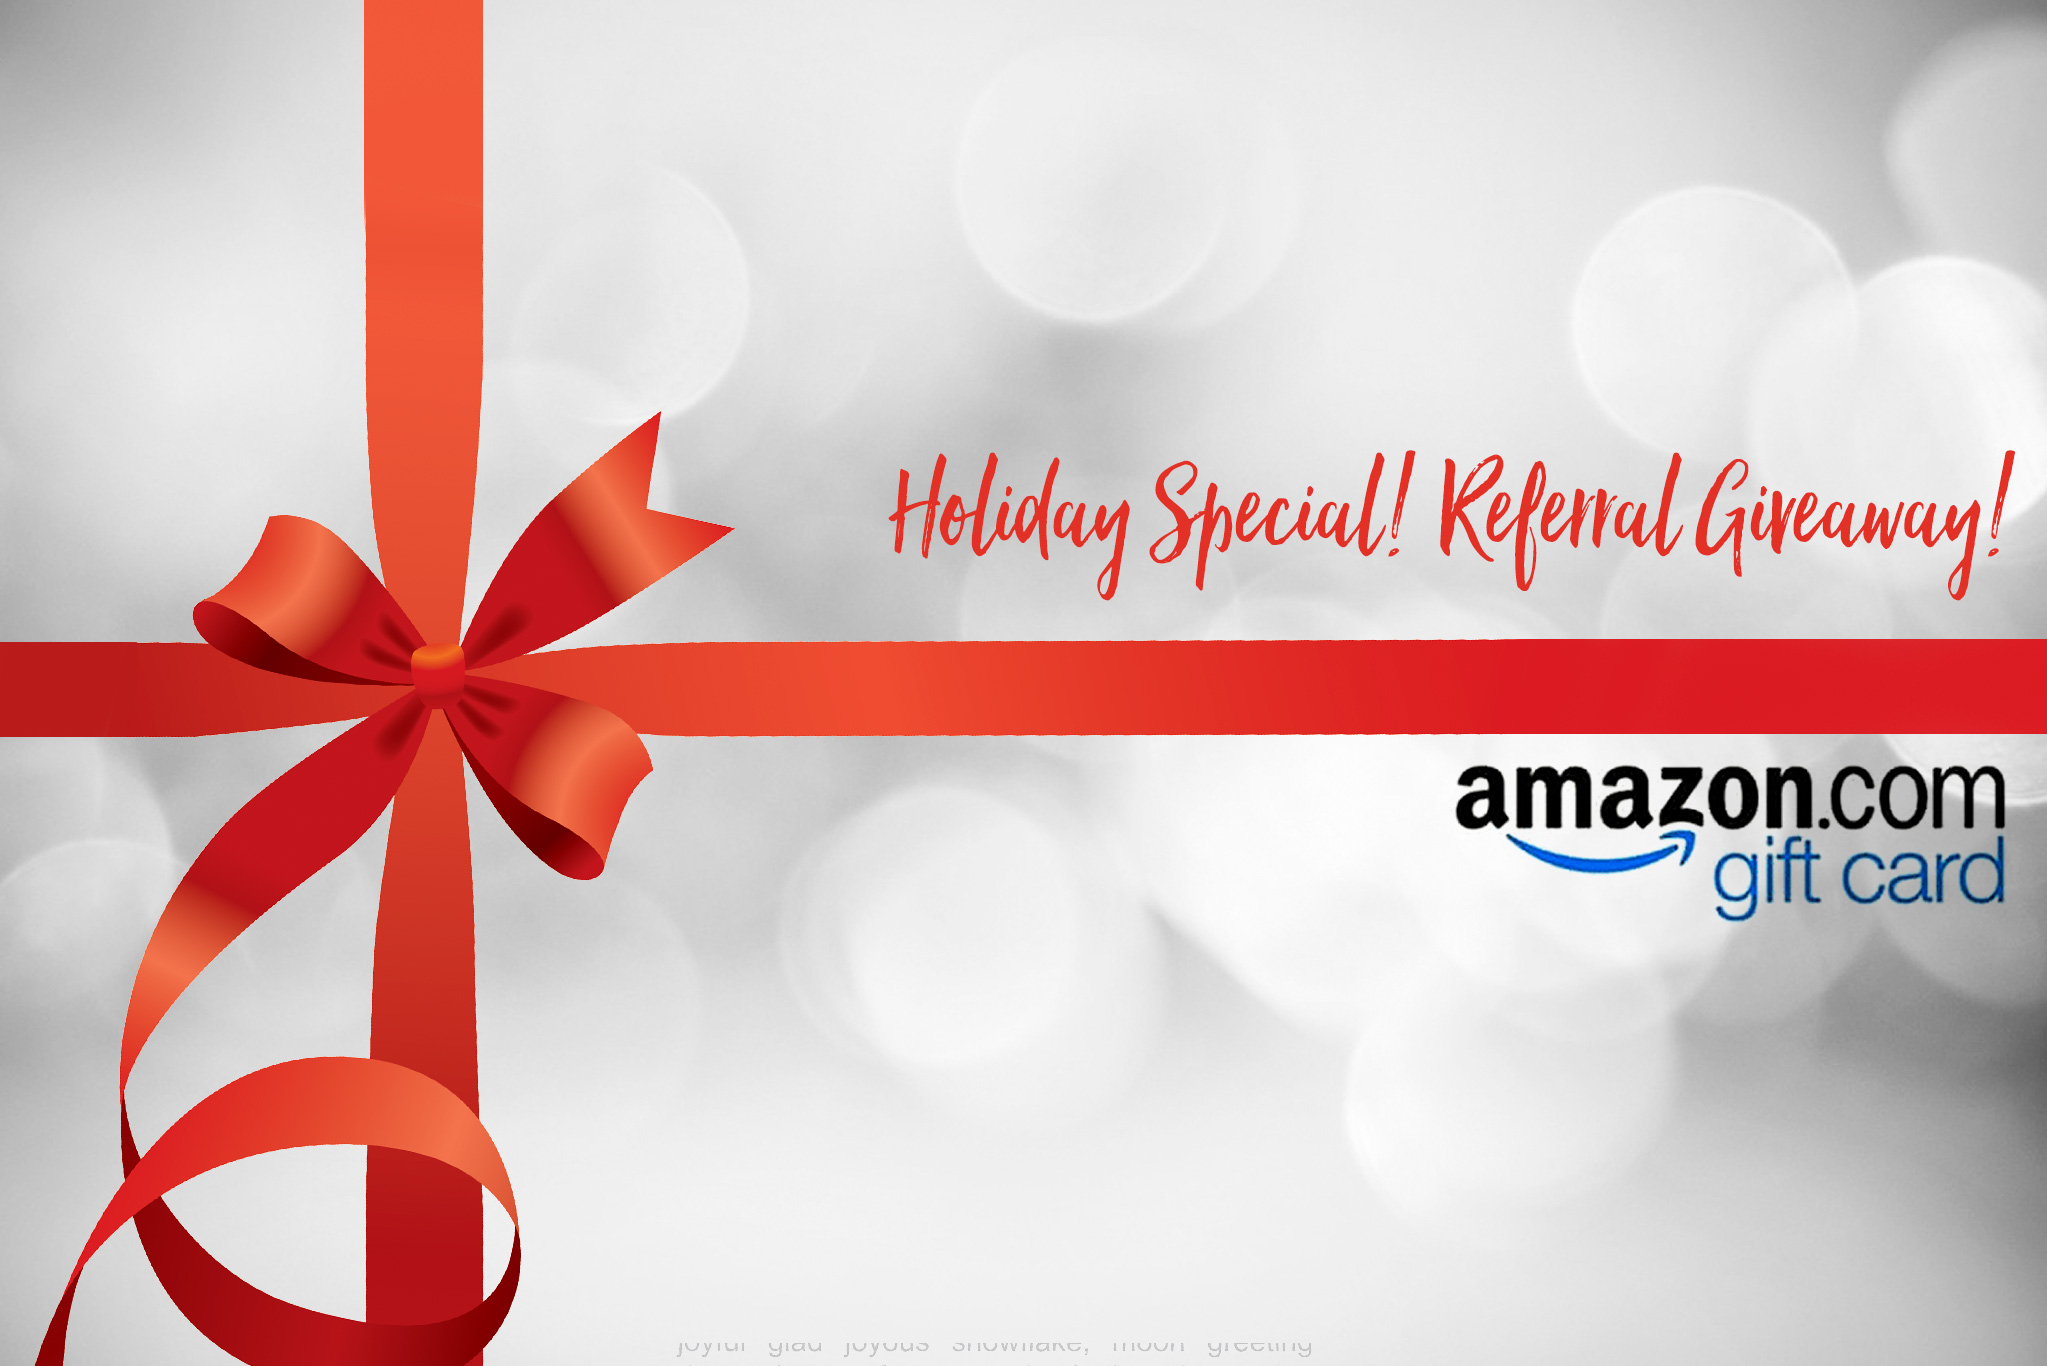 Holiday giveaway 50 amazon gift card for your referral m4hsunfo